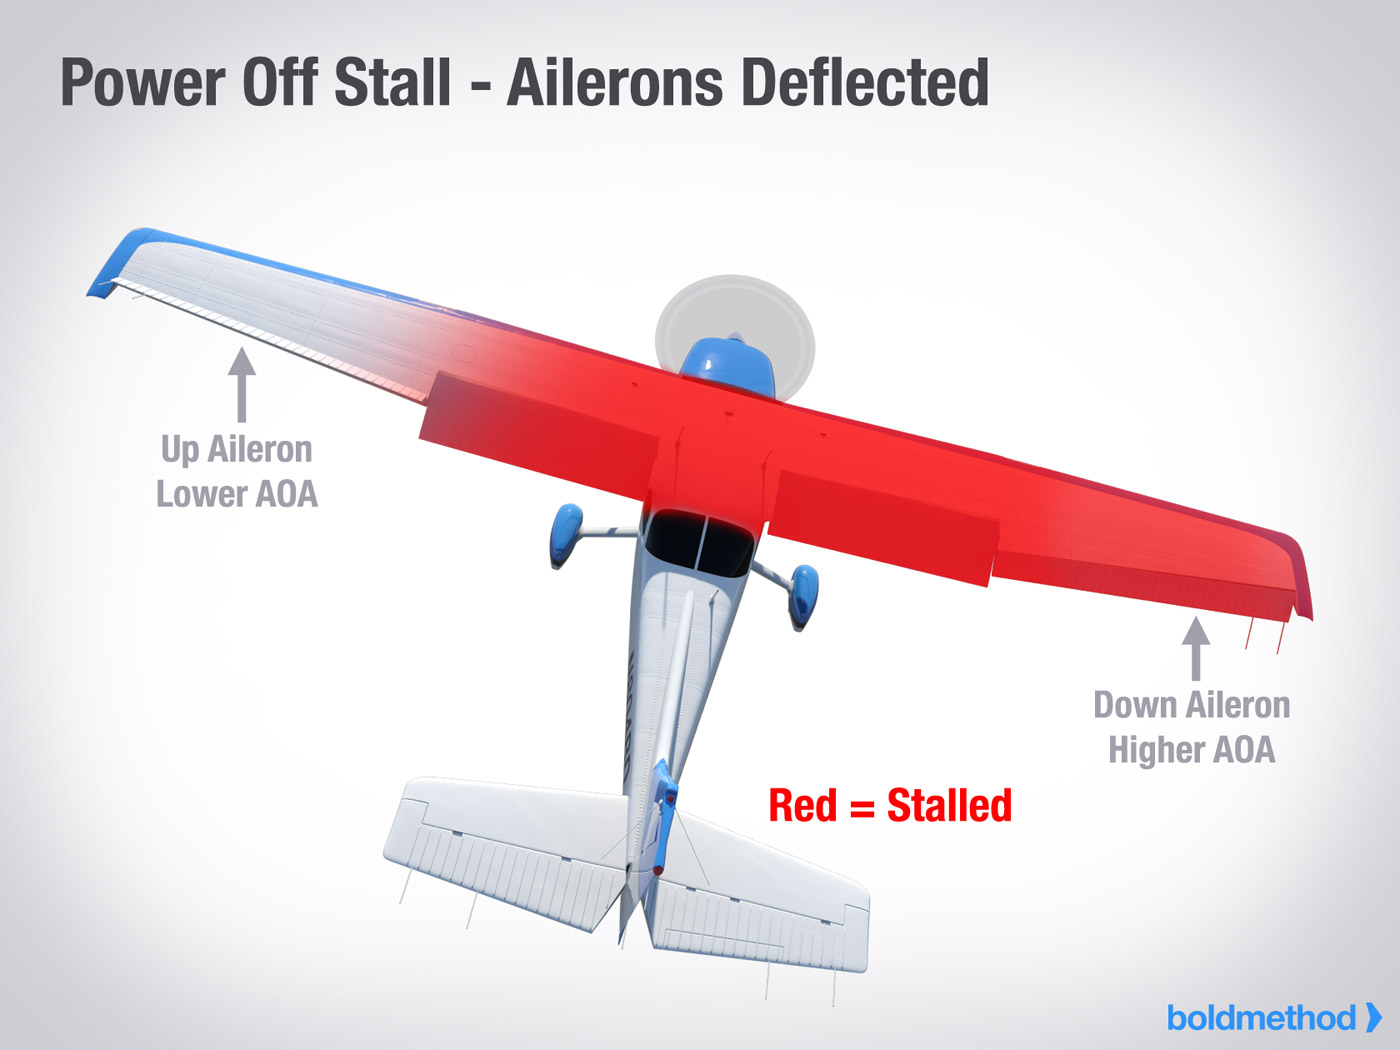 Power-Off Stall - Ailerons Deflected